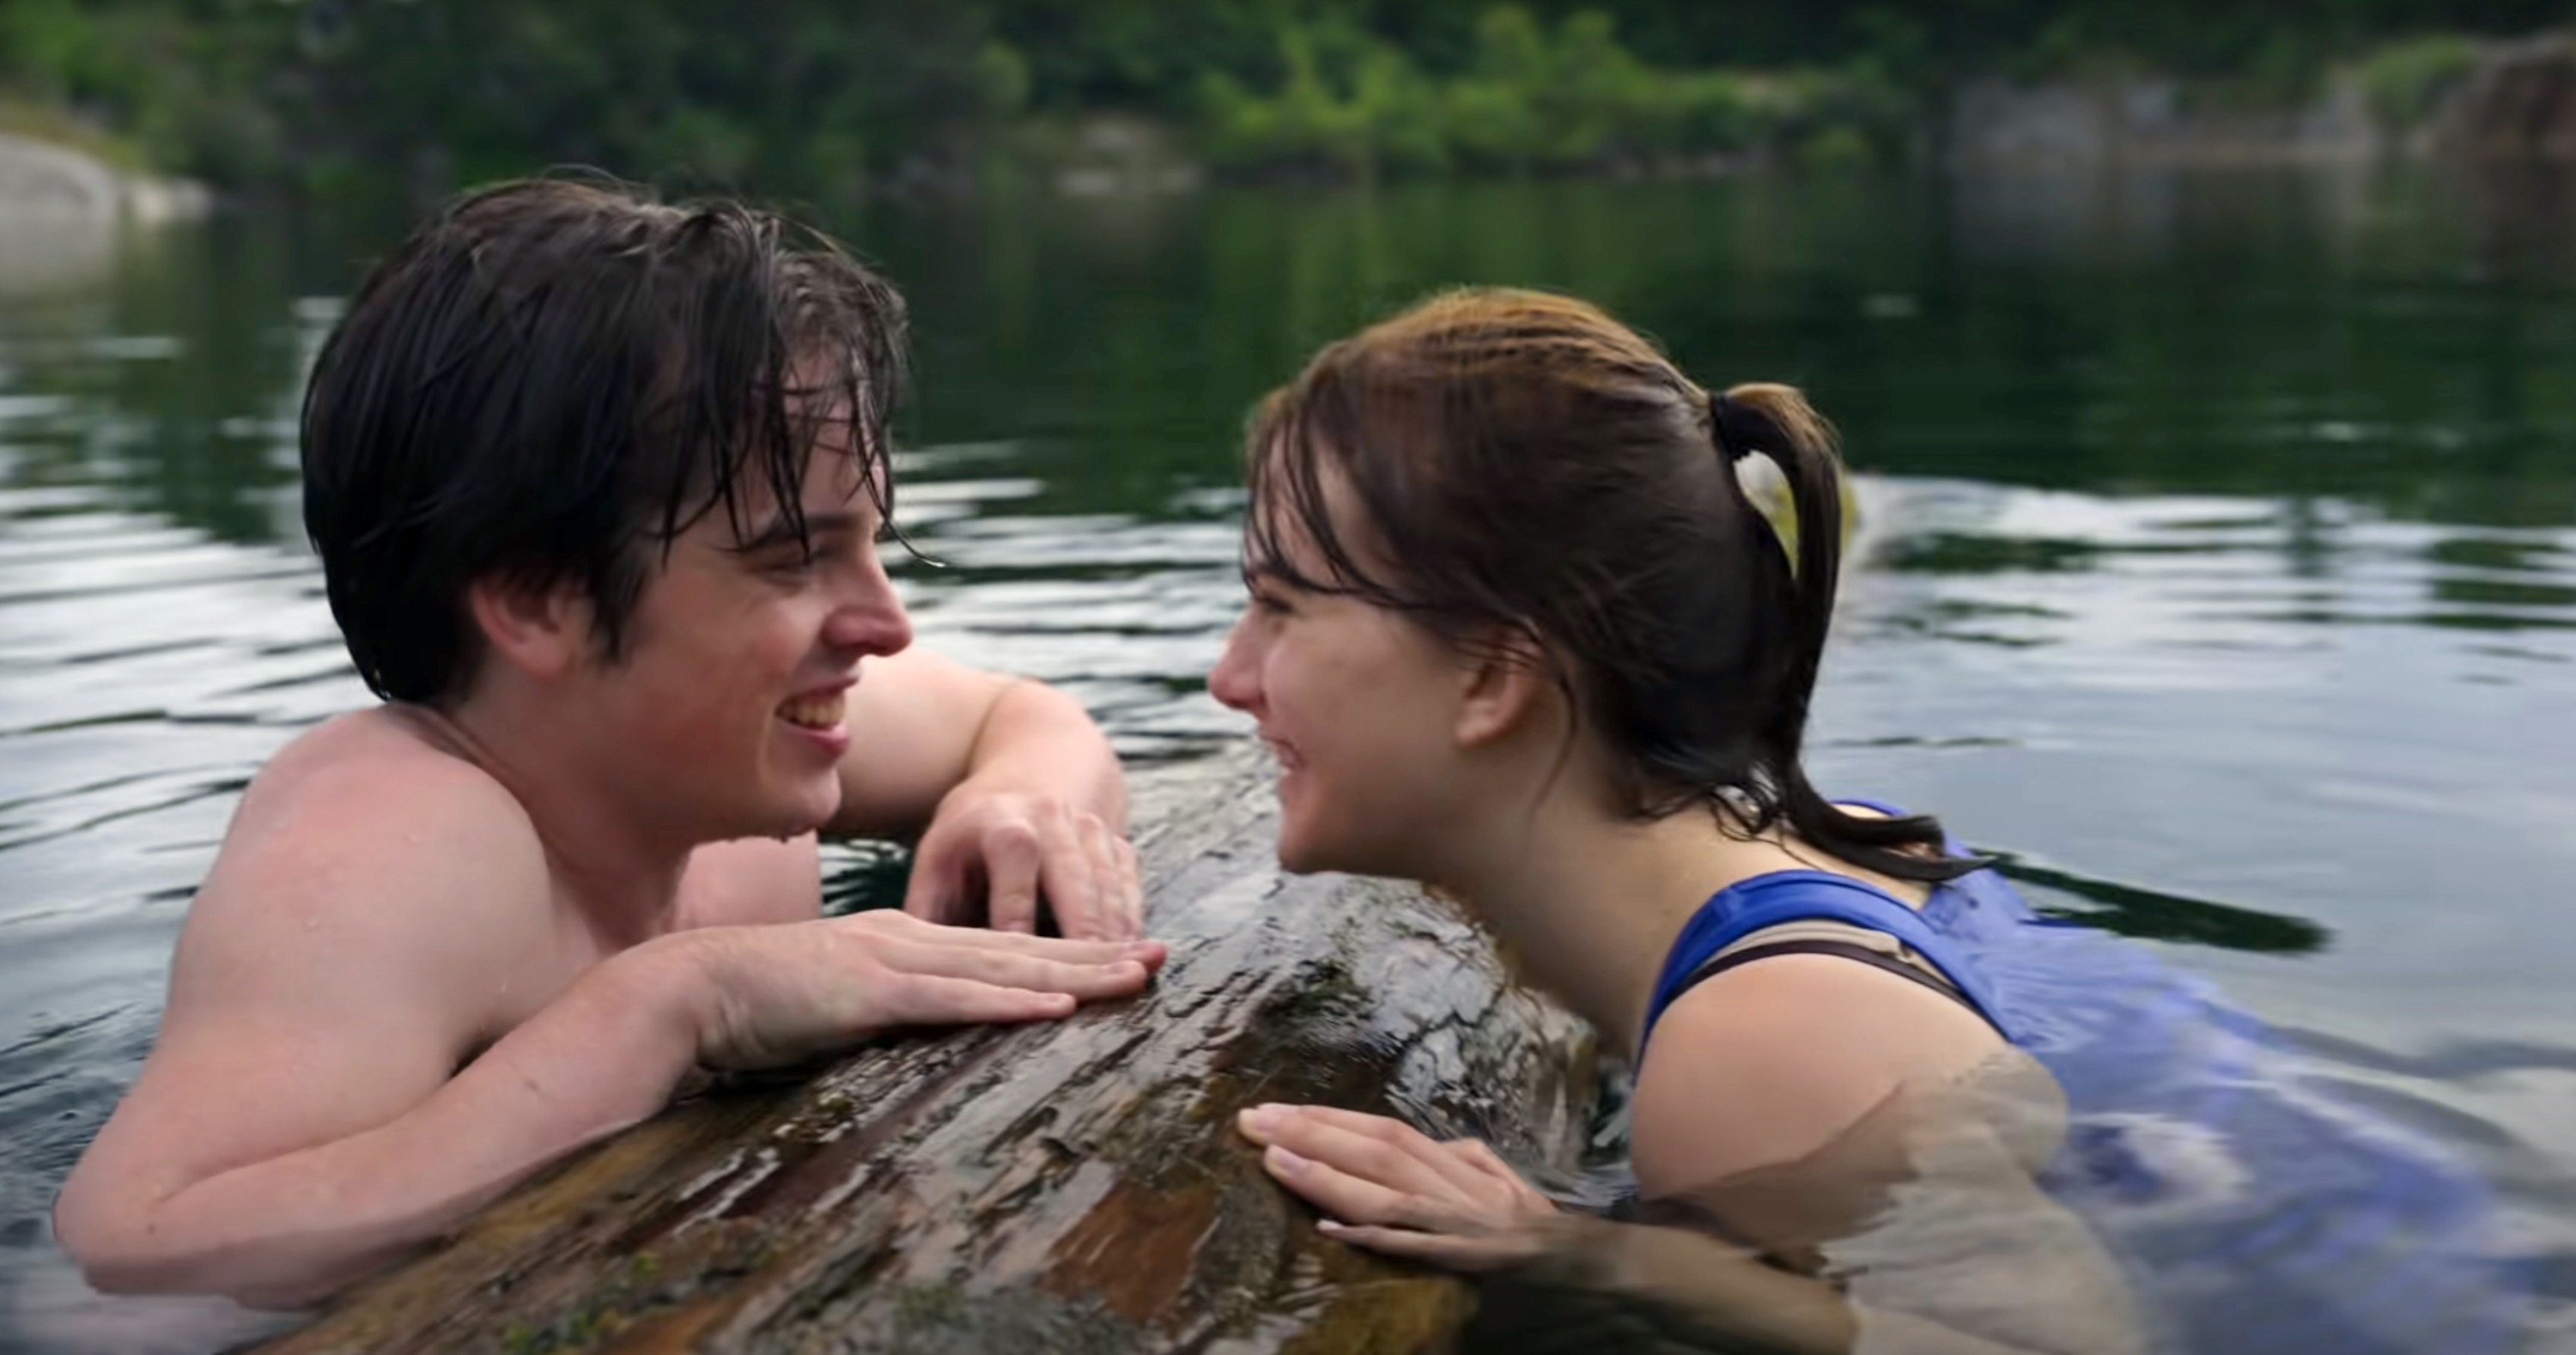 Ferdia Walsh-Peelo and Emilia Jones lean on a log in the water together